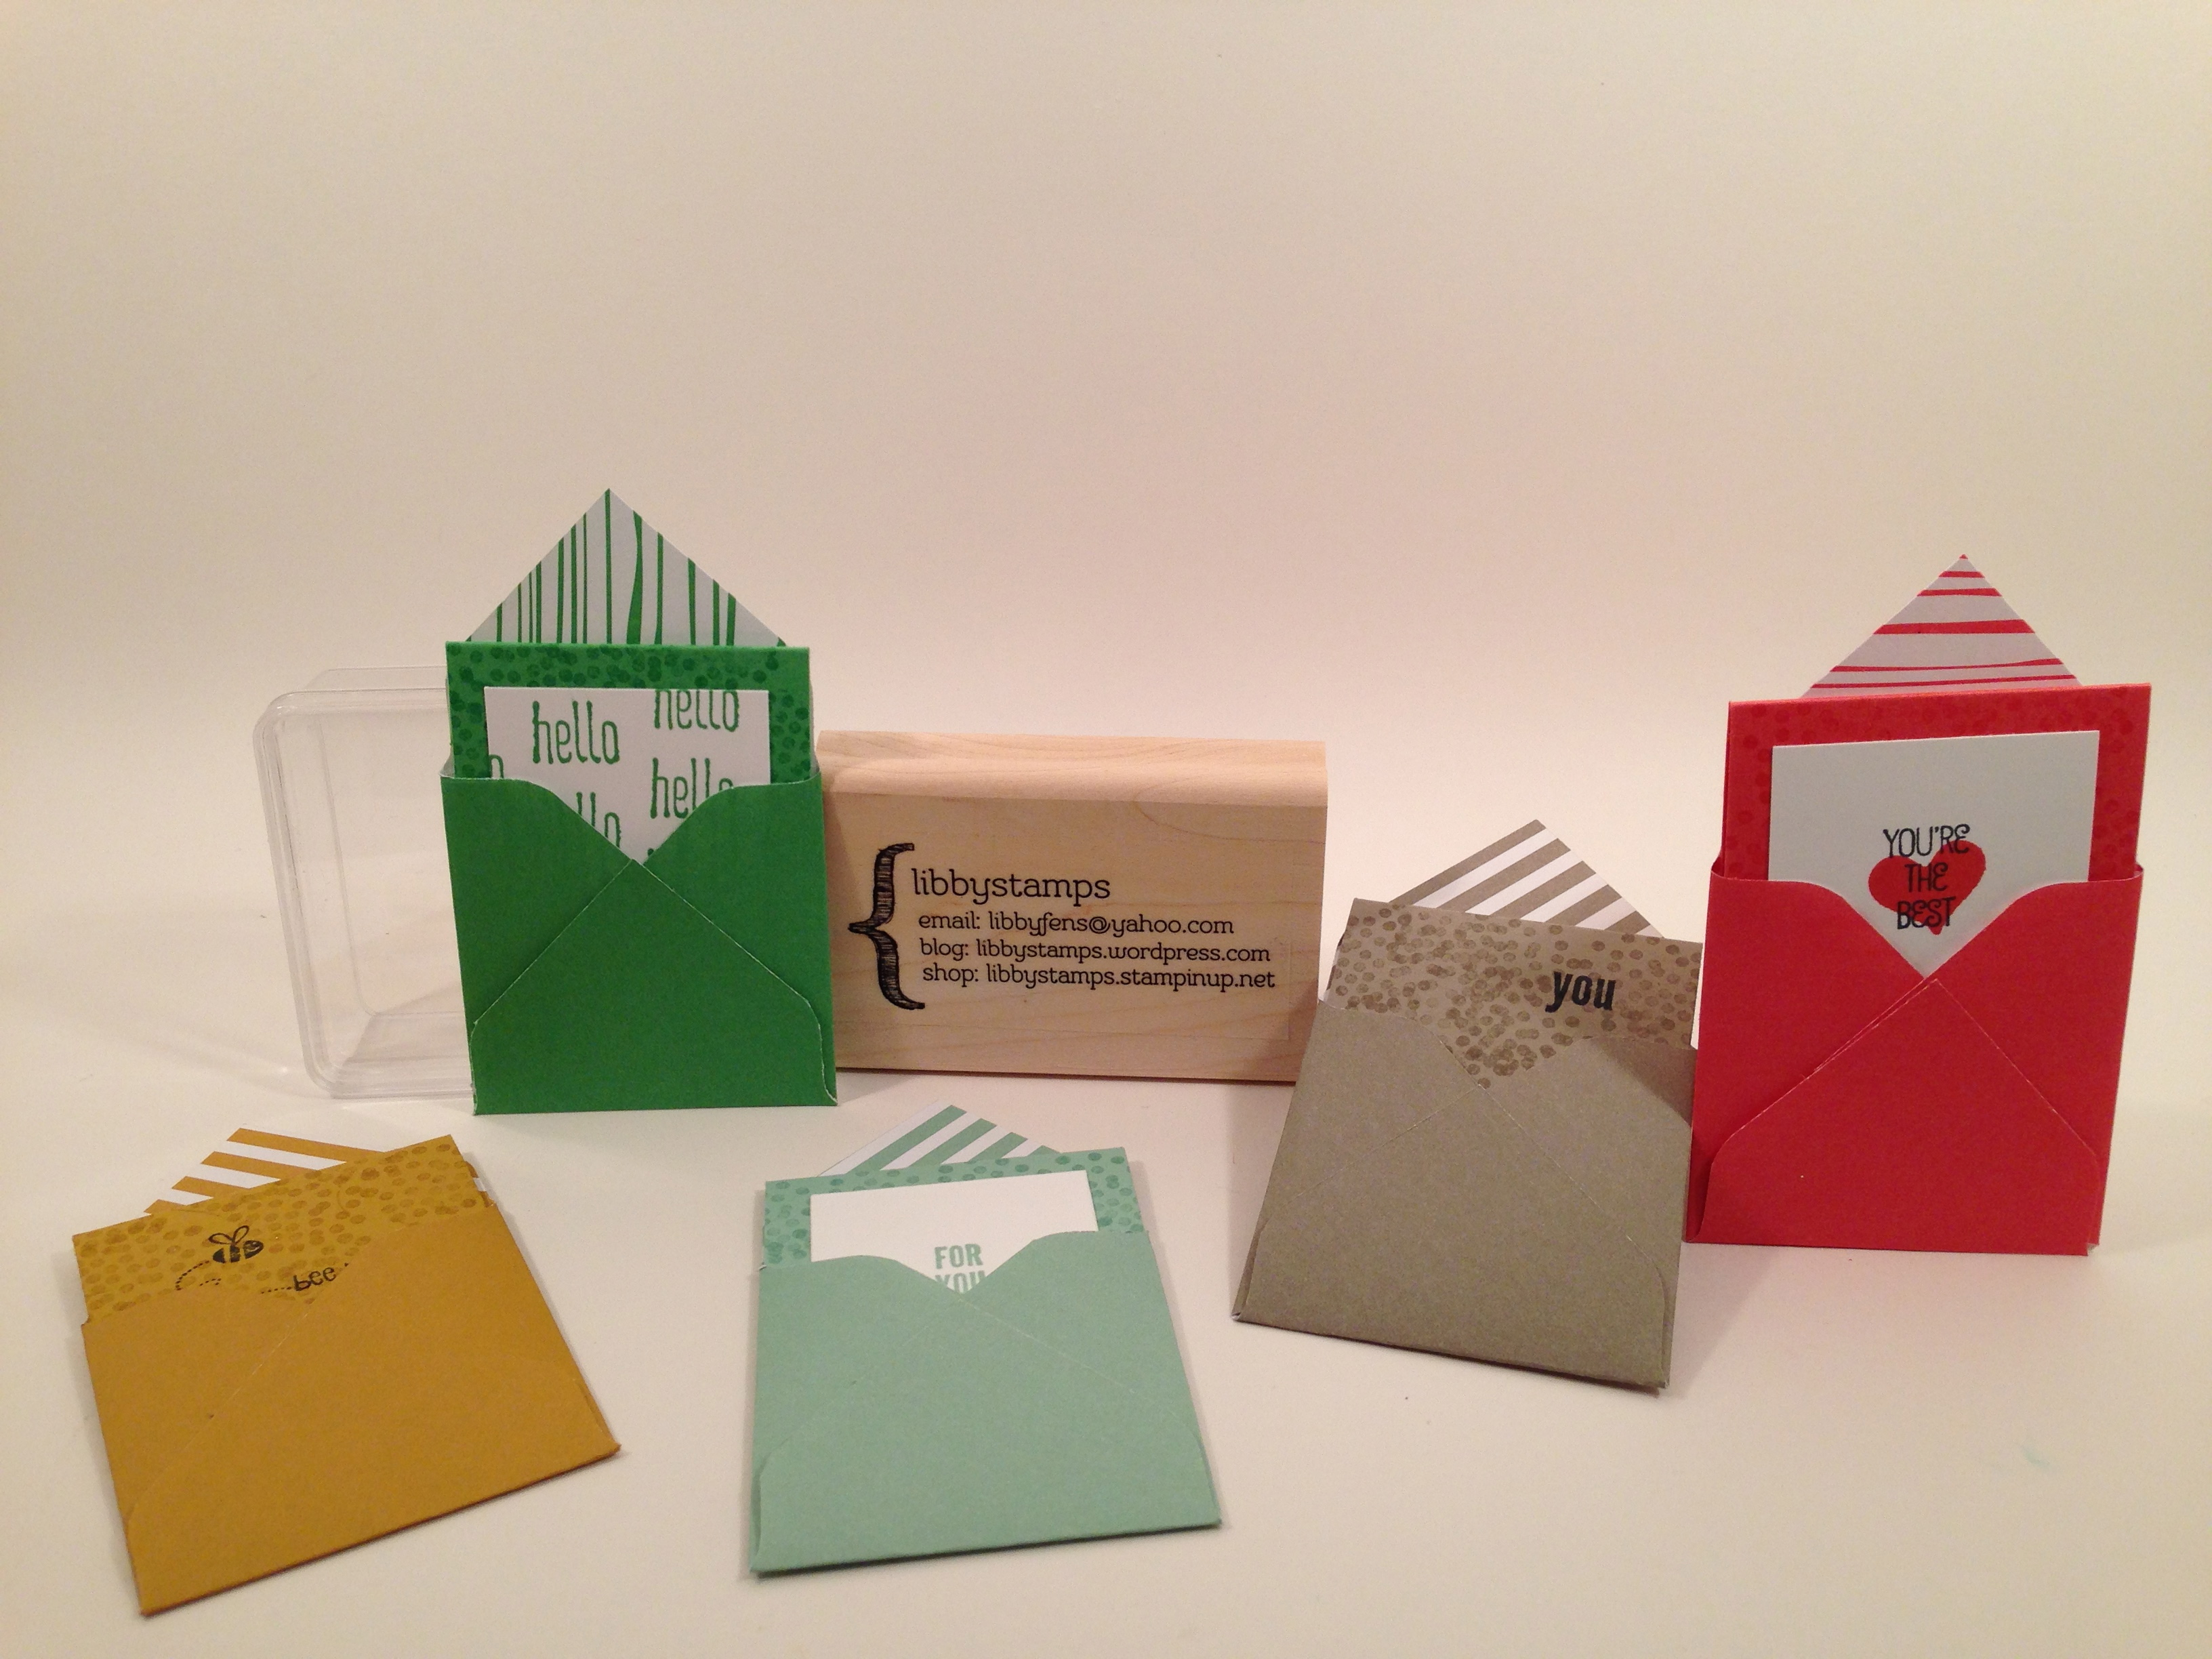 libbystamps, Stampin Up, Honeycomb Hello, 2x2 Mini Cards, Envelope Punch Board,